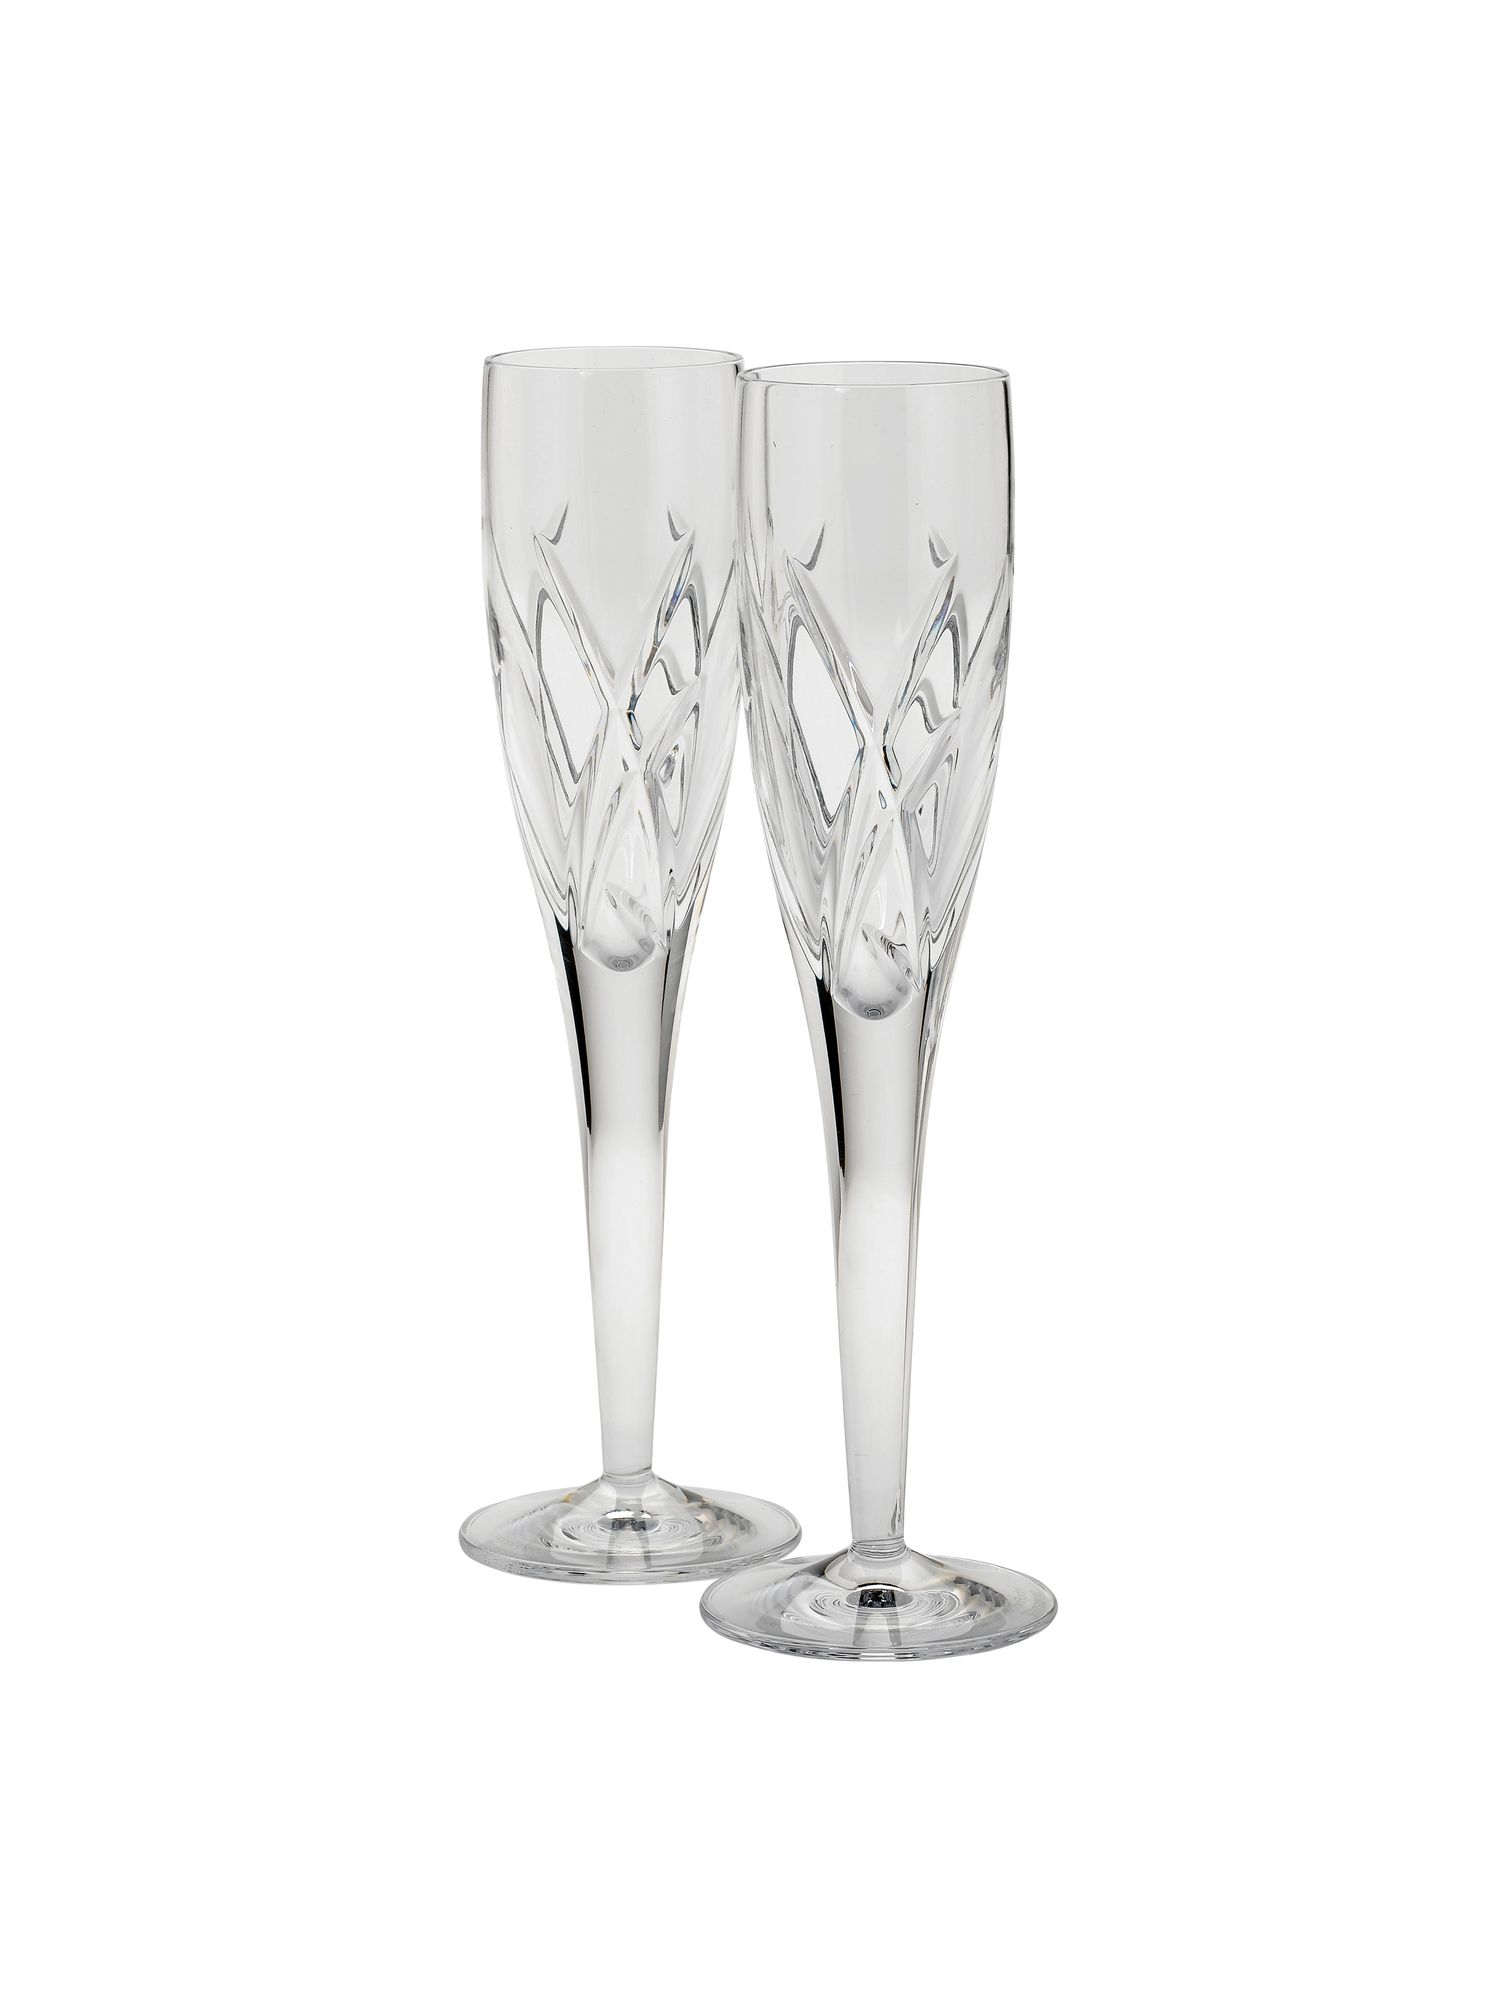 John Rocha at Waterford Crystal Signature flute set of 2 Image